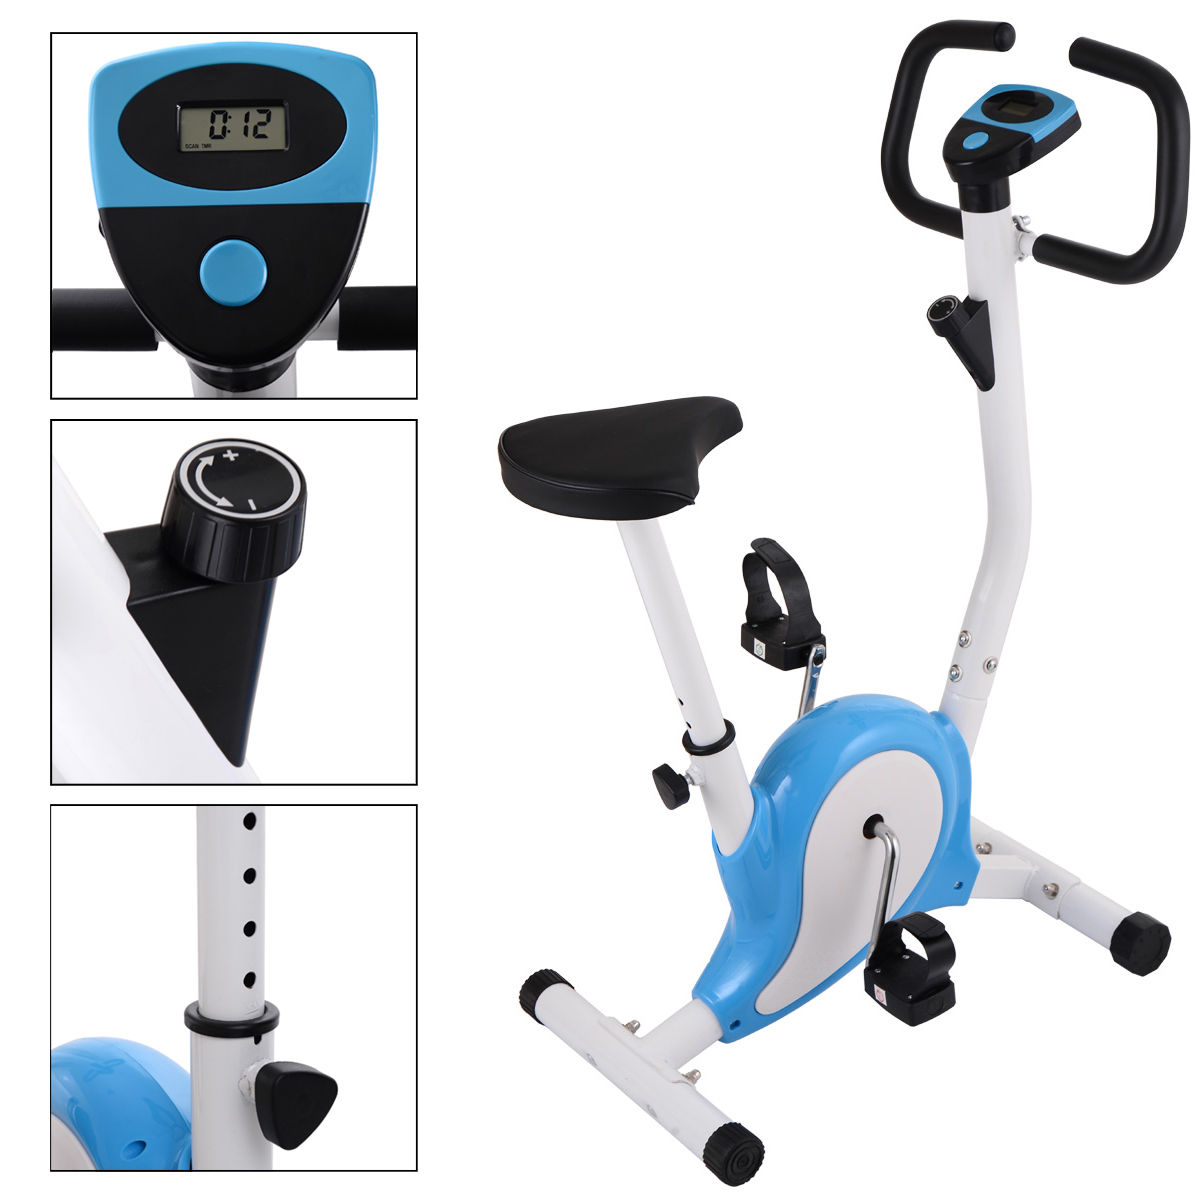 Bowflex Revolution Xp Accessories: Upright Exercise Bike Magnetic Resistance Cardio Workout